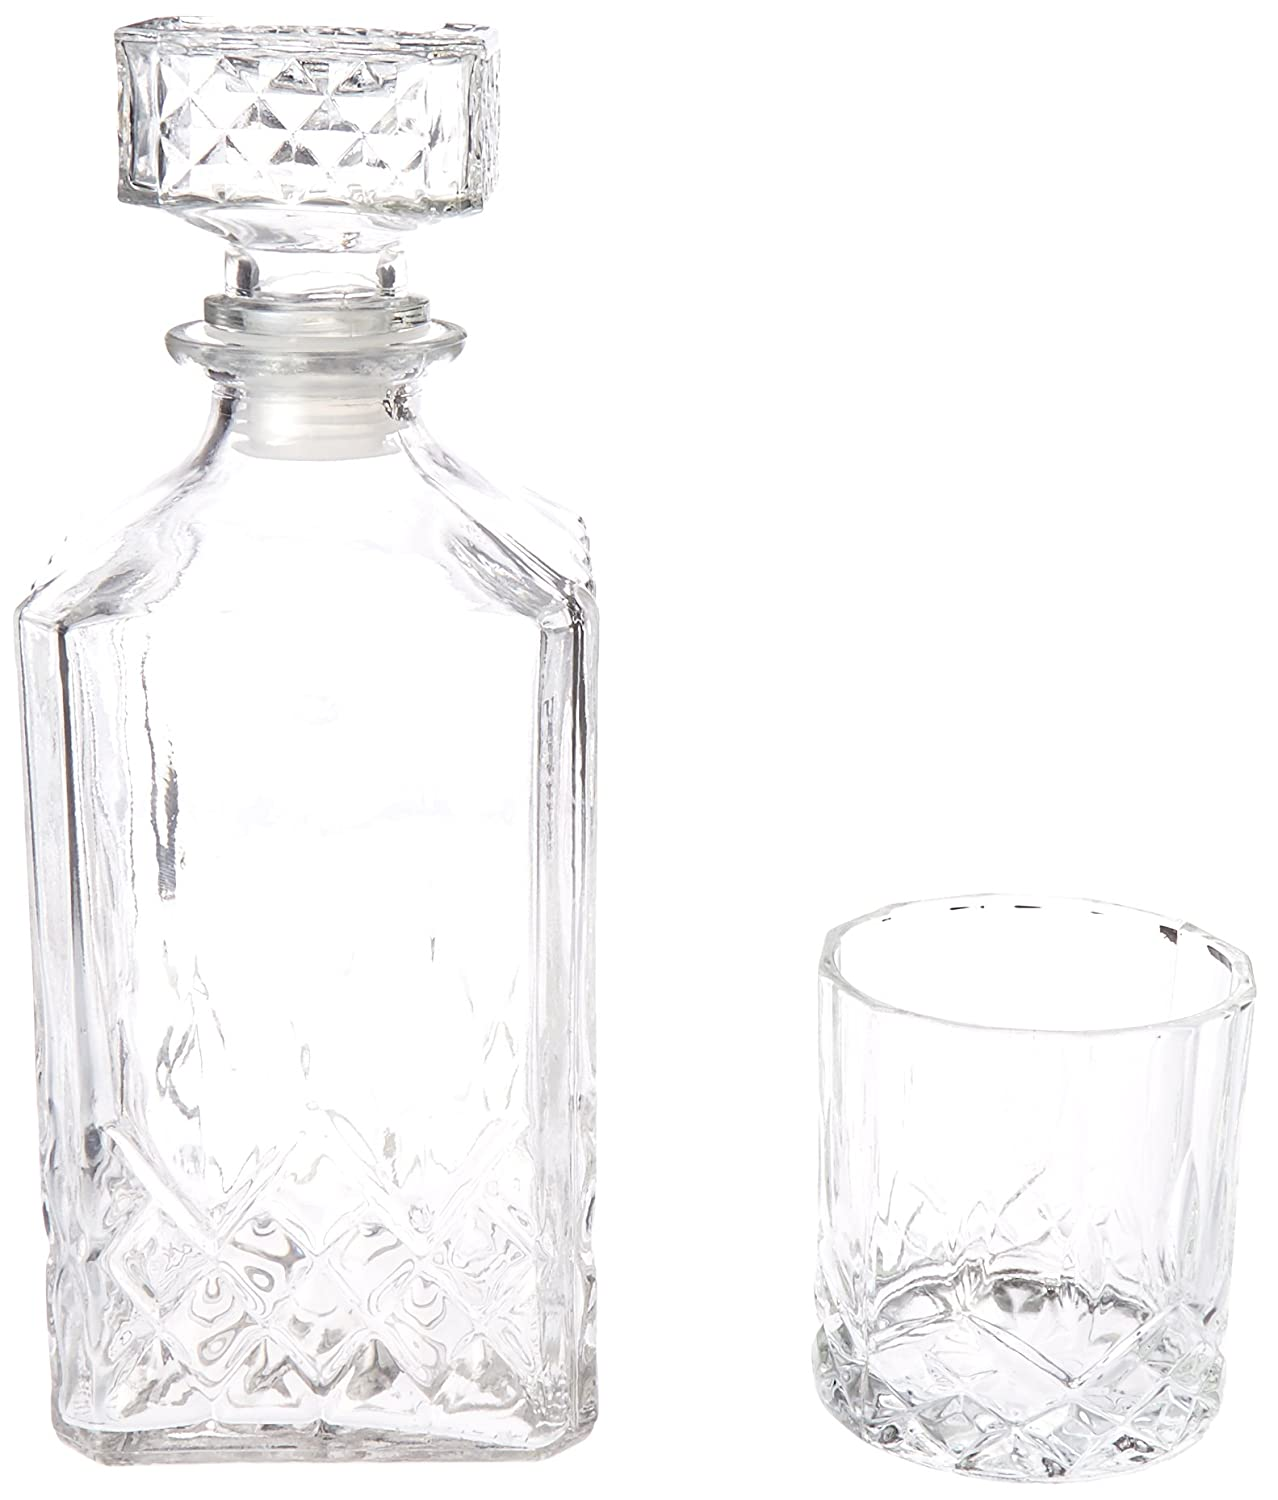 Style Setter Denmark 7 Piece Beverage/Decanter Set Clear 210275-7GB